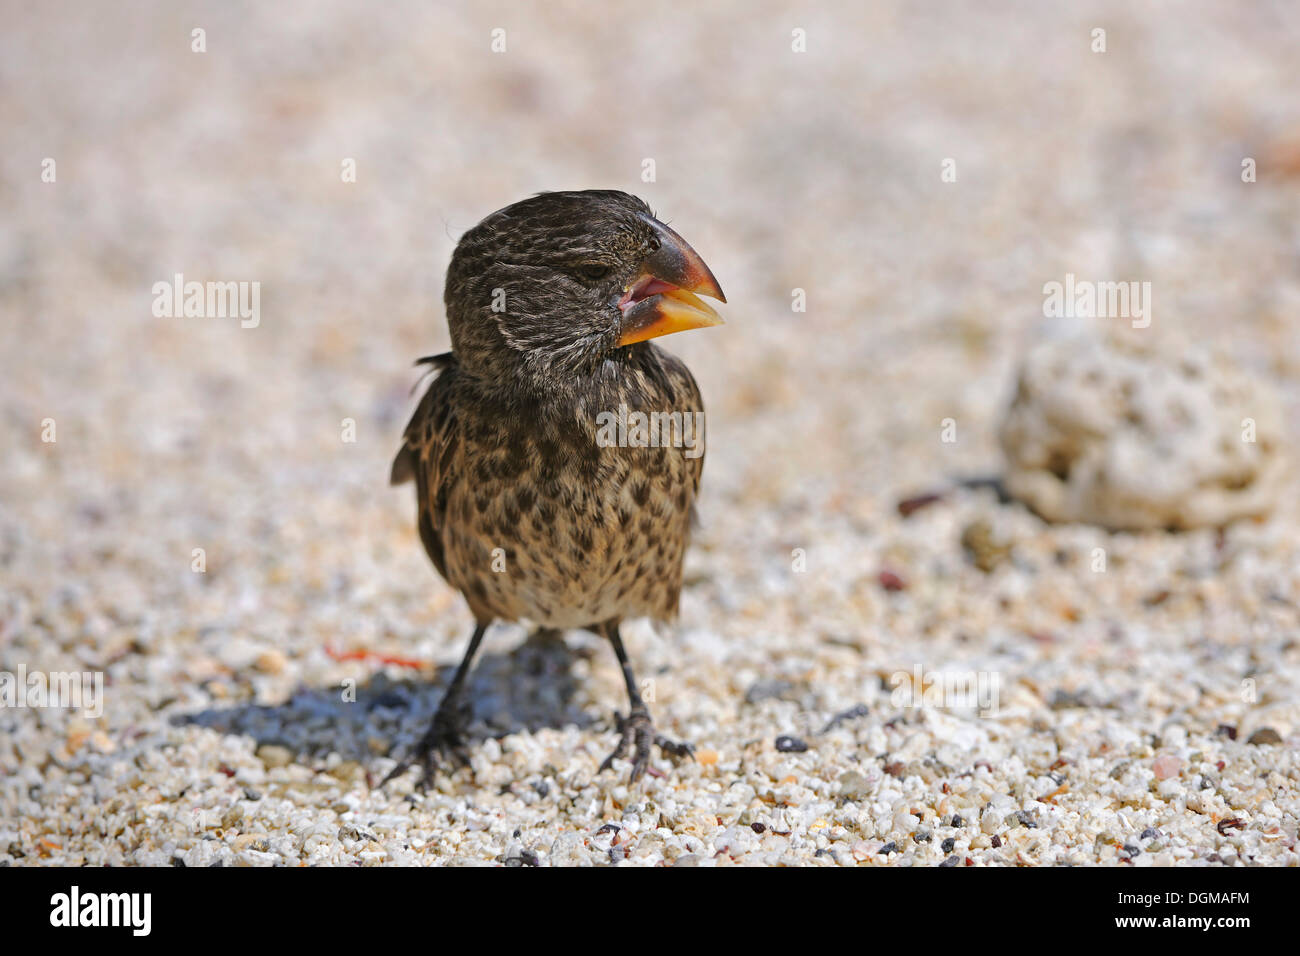 Medium Ground Finch (Geospiza fortis), Darwin finch, Genovesa Island, Galapagos Islands, UNESCO World Natural Heritage Site - Stock Image